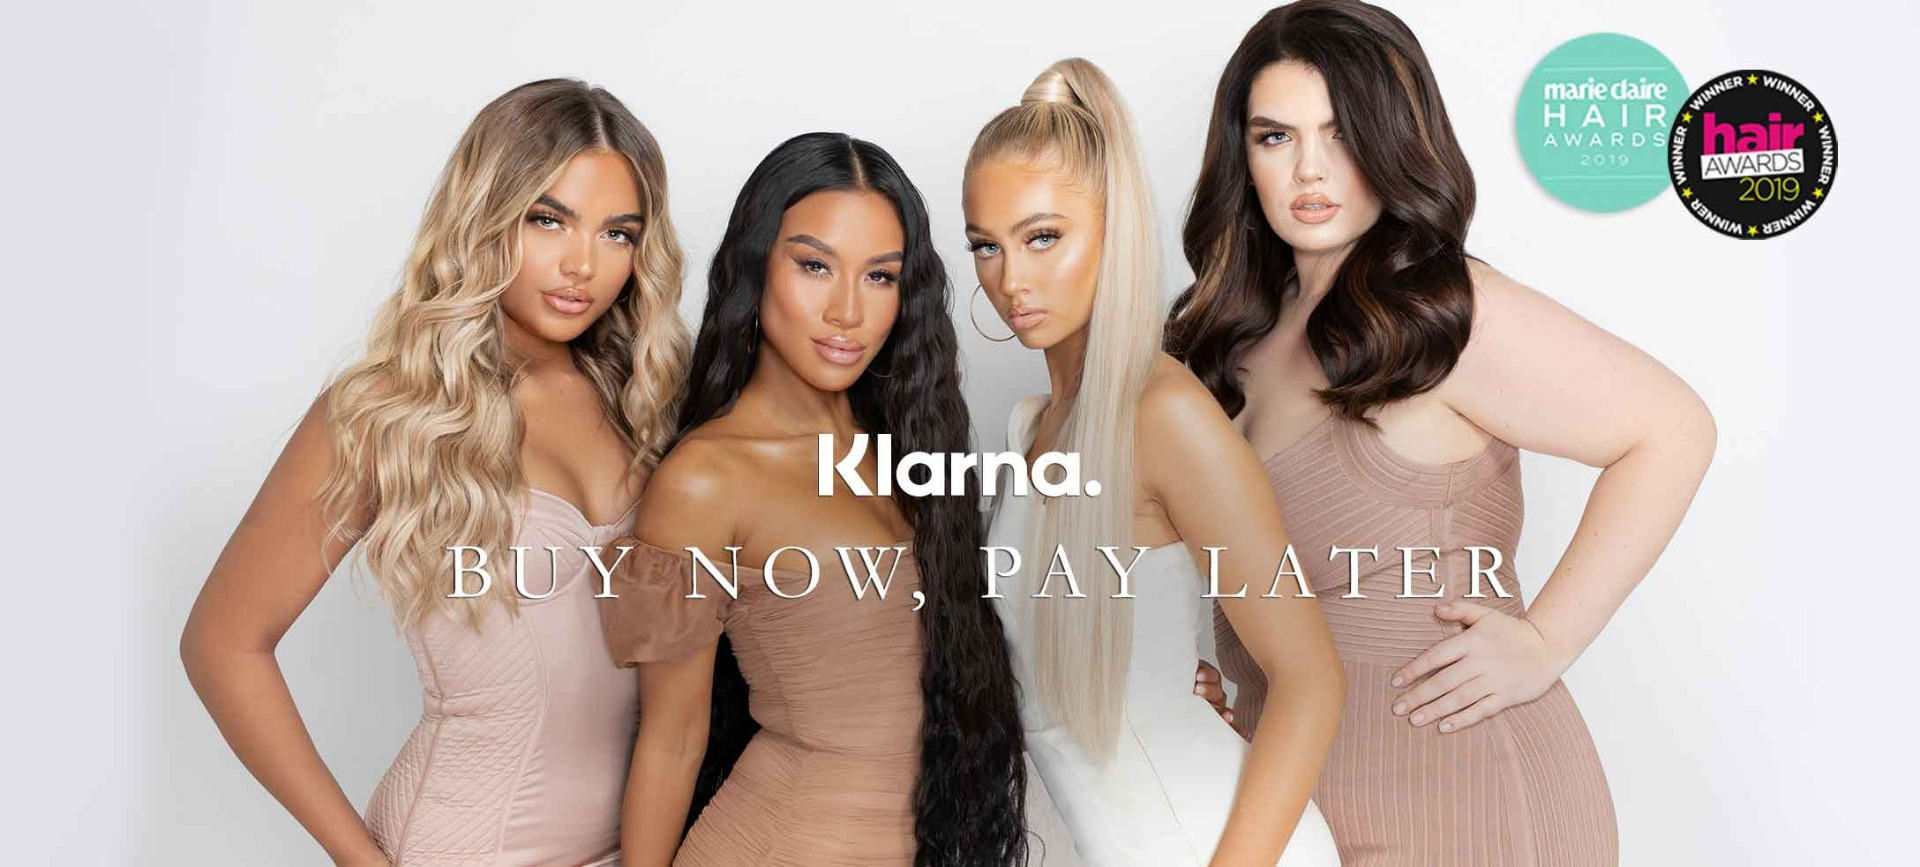 KLARNA - Buy Now, Pay Later